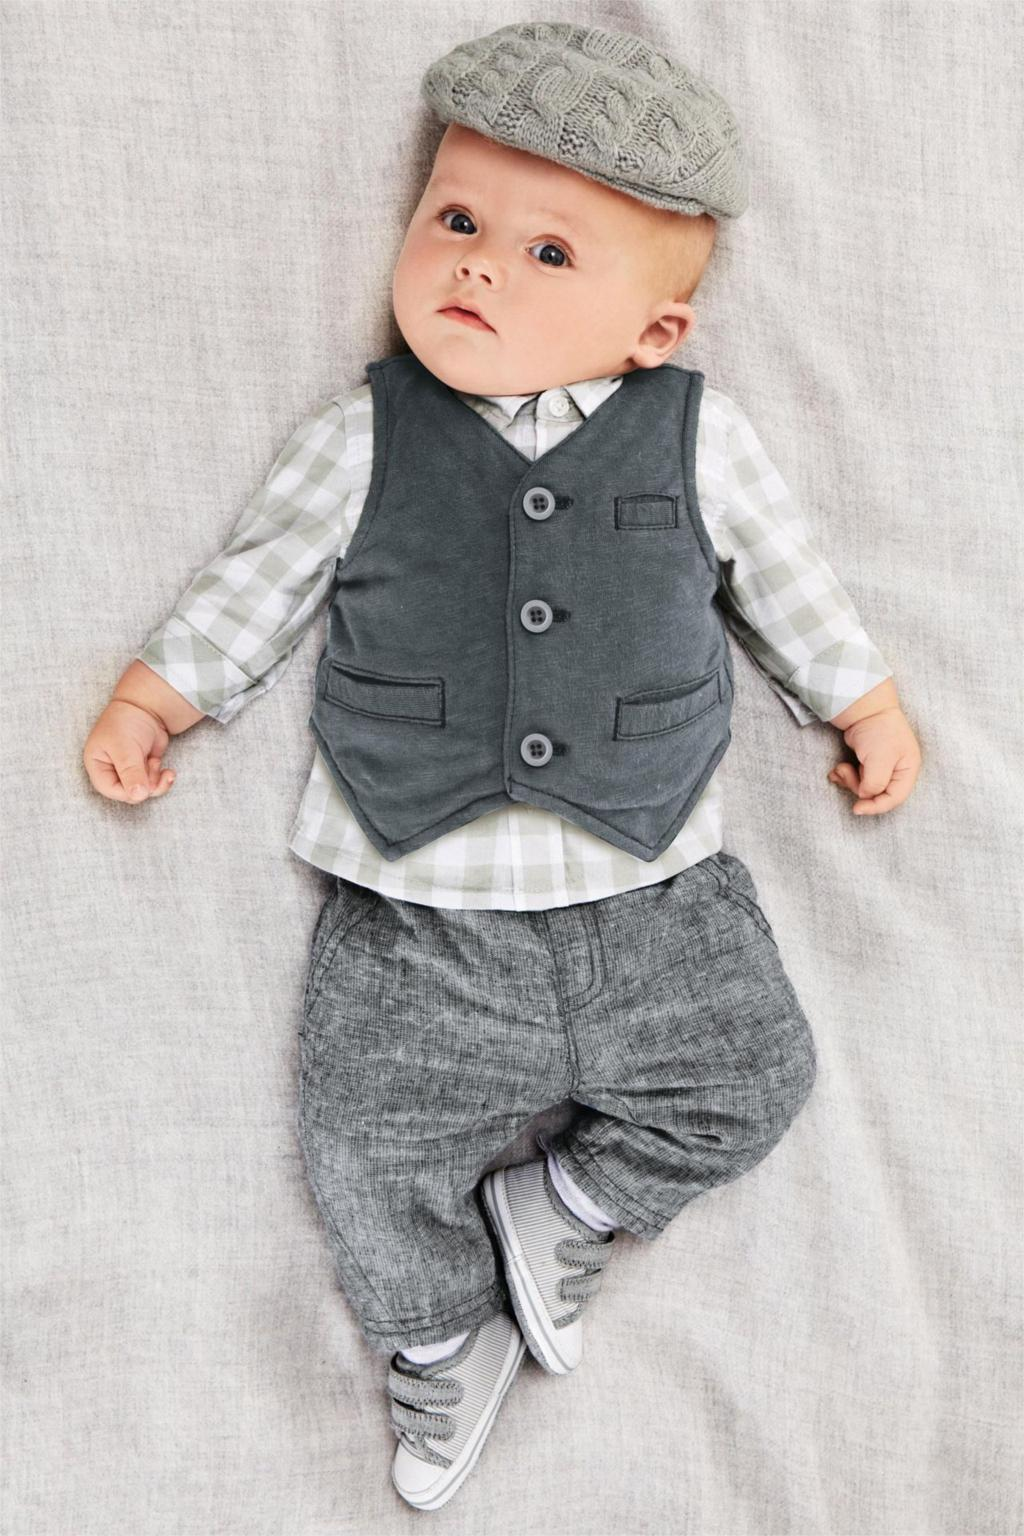 Aliexpress.com : Buy 2015 Cute baby boy clothes 3pcs newborn boy ...